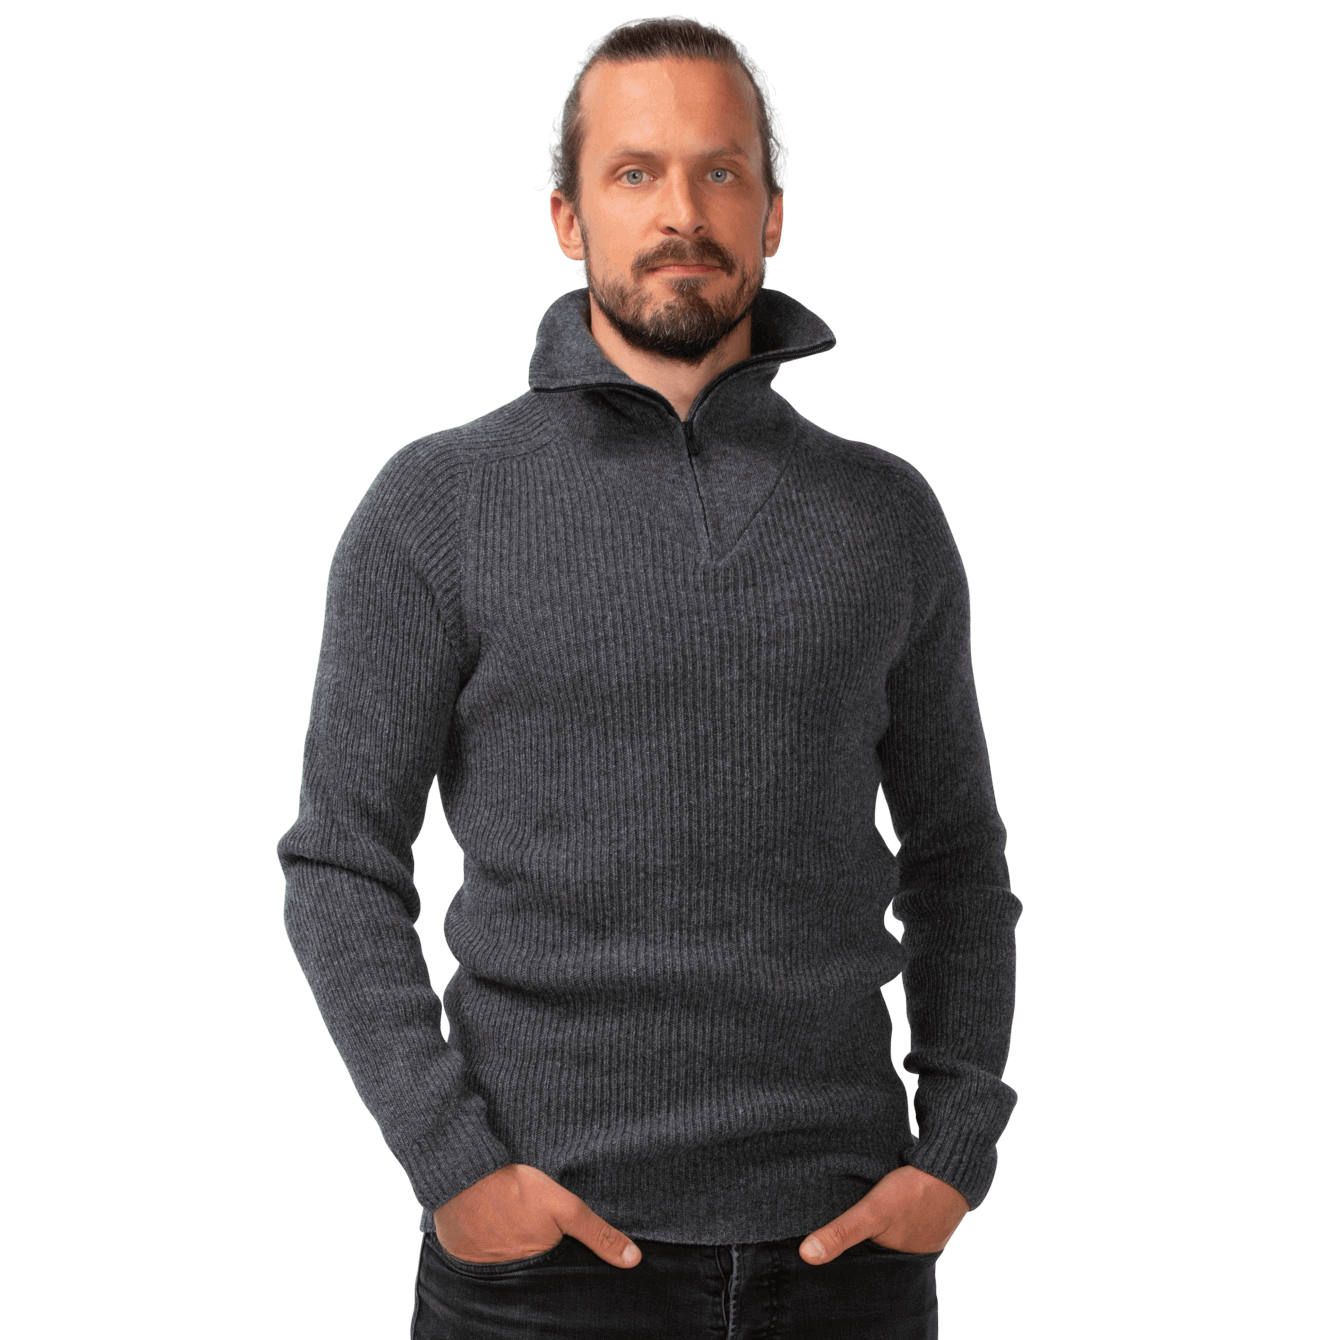 North Outdoor - Men's Metso Sweater - 100 % Merino Wool - Made in Finland - Weekendbee - sustainable sportswear